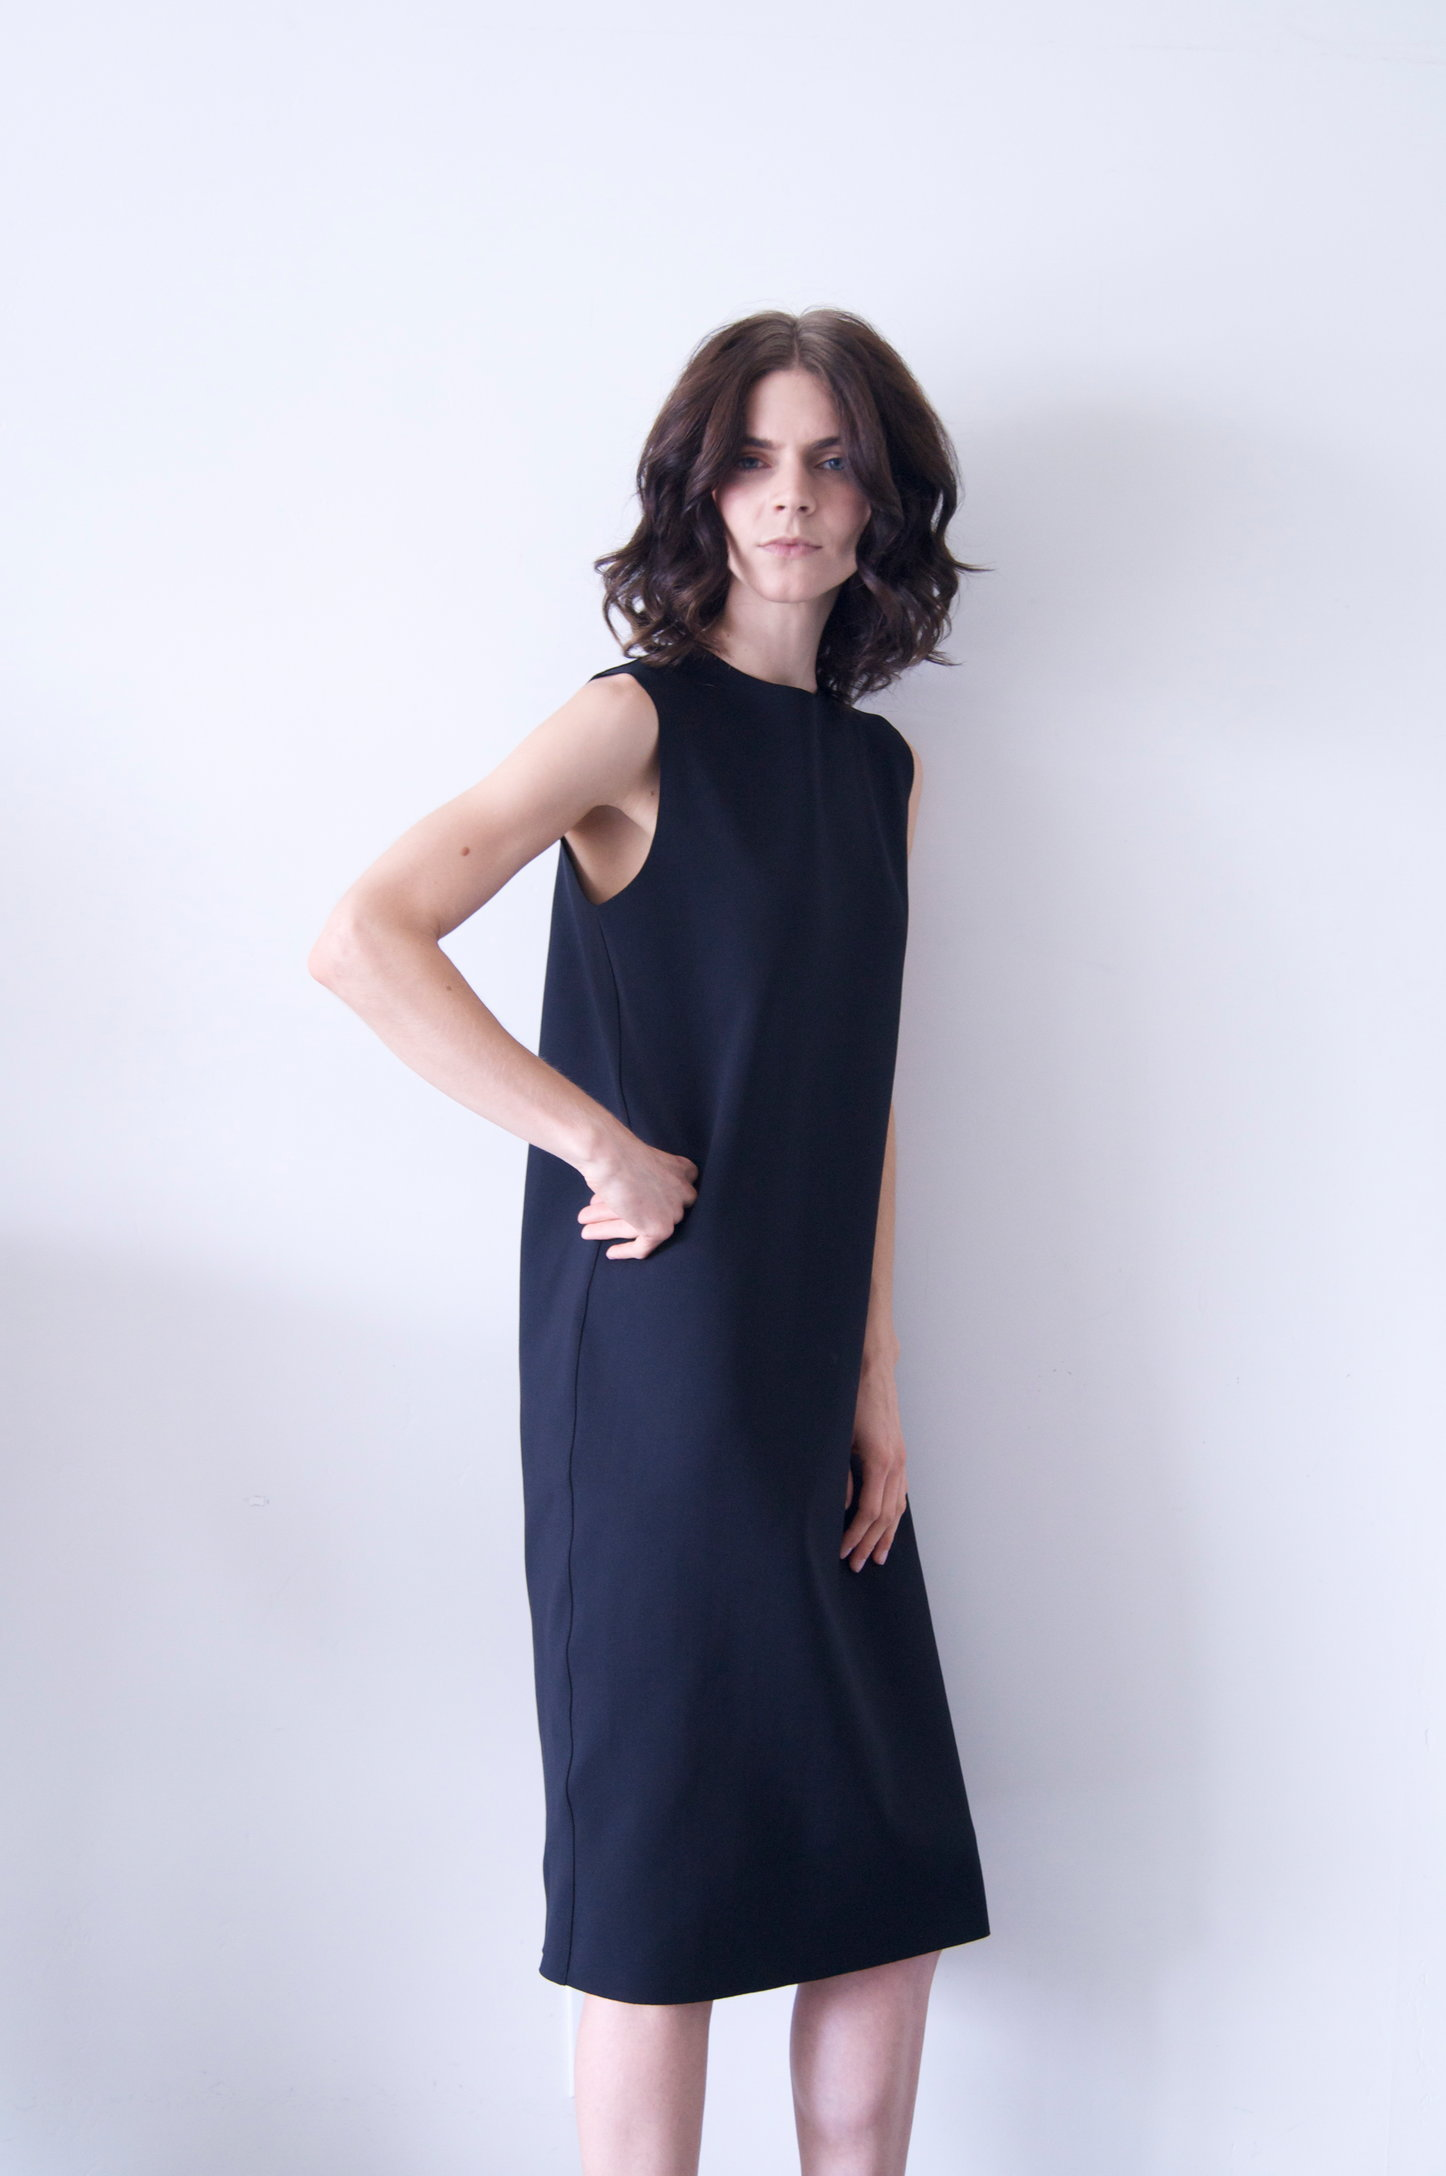 tottie dress in black neoprene   550.00